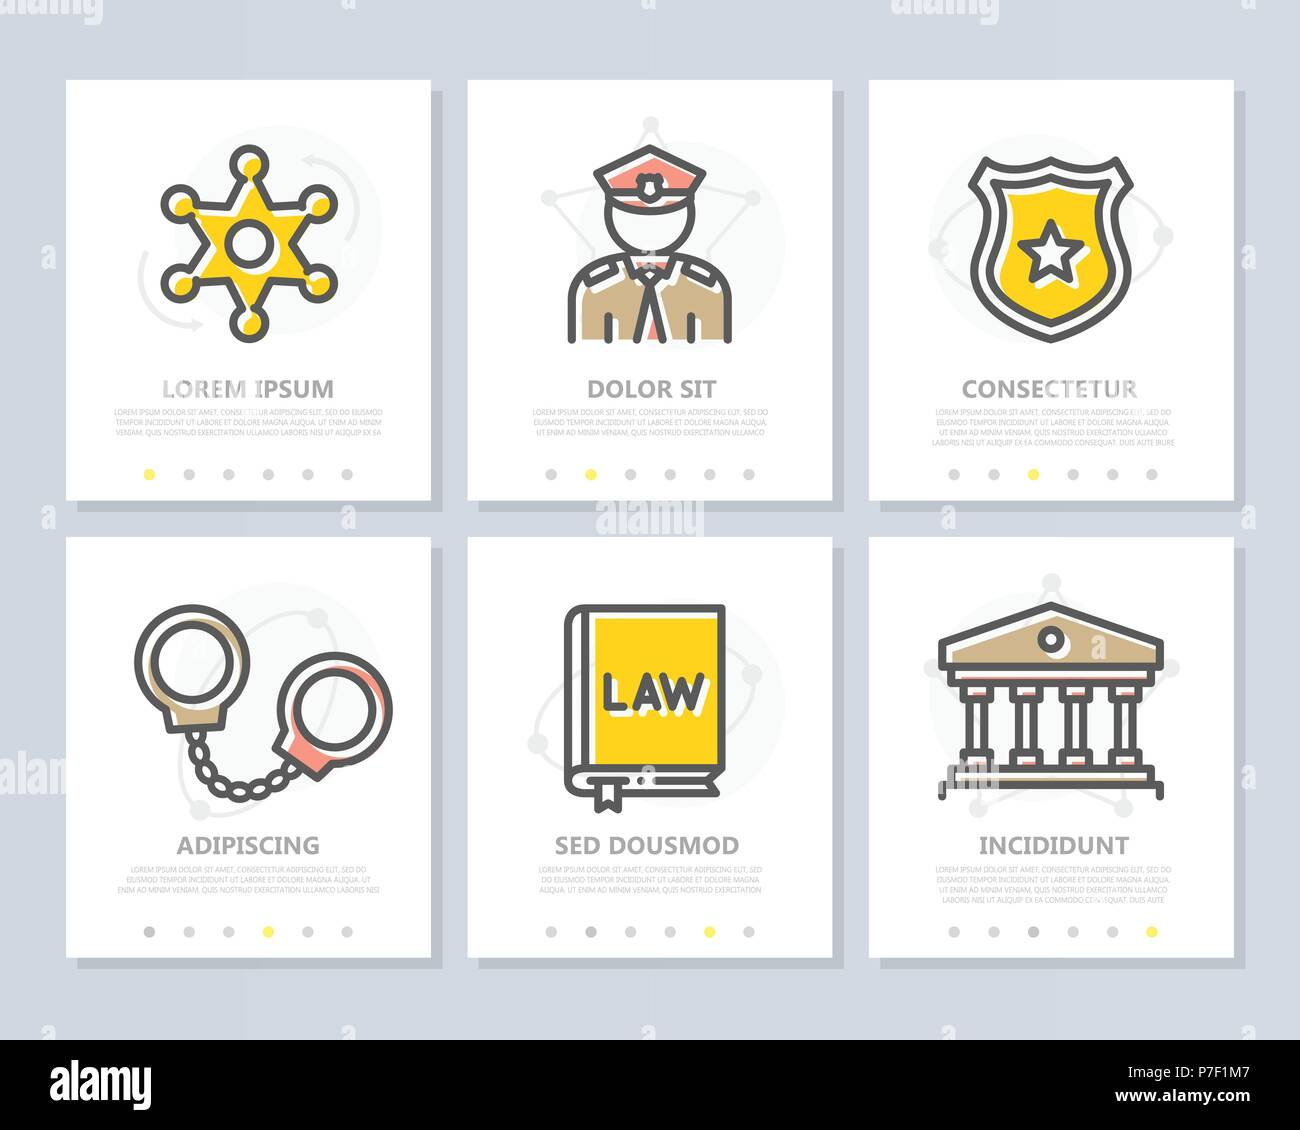 Set of vector crime, law, police and justice colored elements for multipurpose a4 presentation template. Leaflet, corporate report, marketing, advertising, book cover design. - Stock Vector